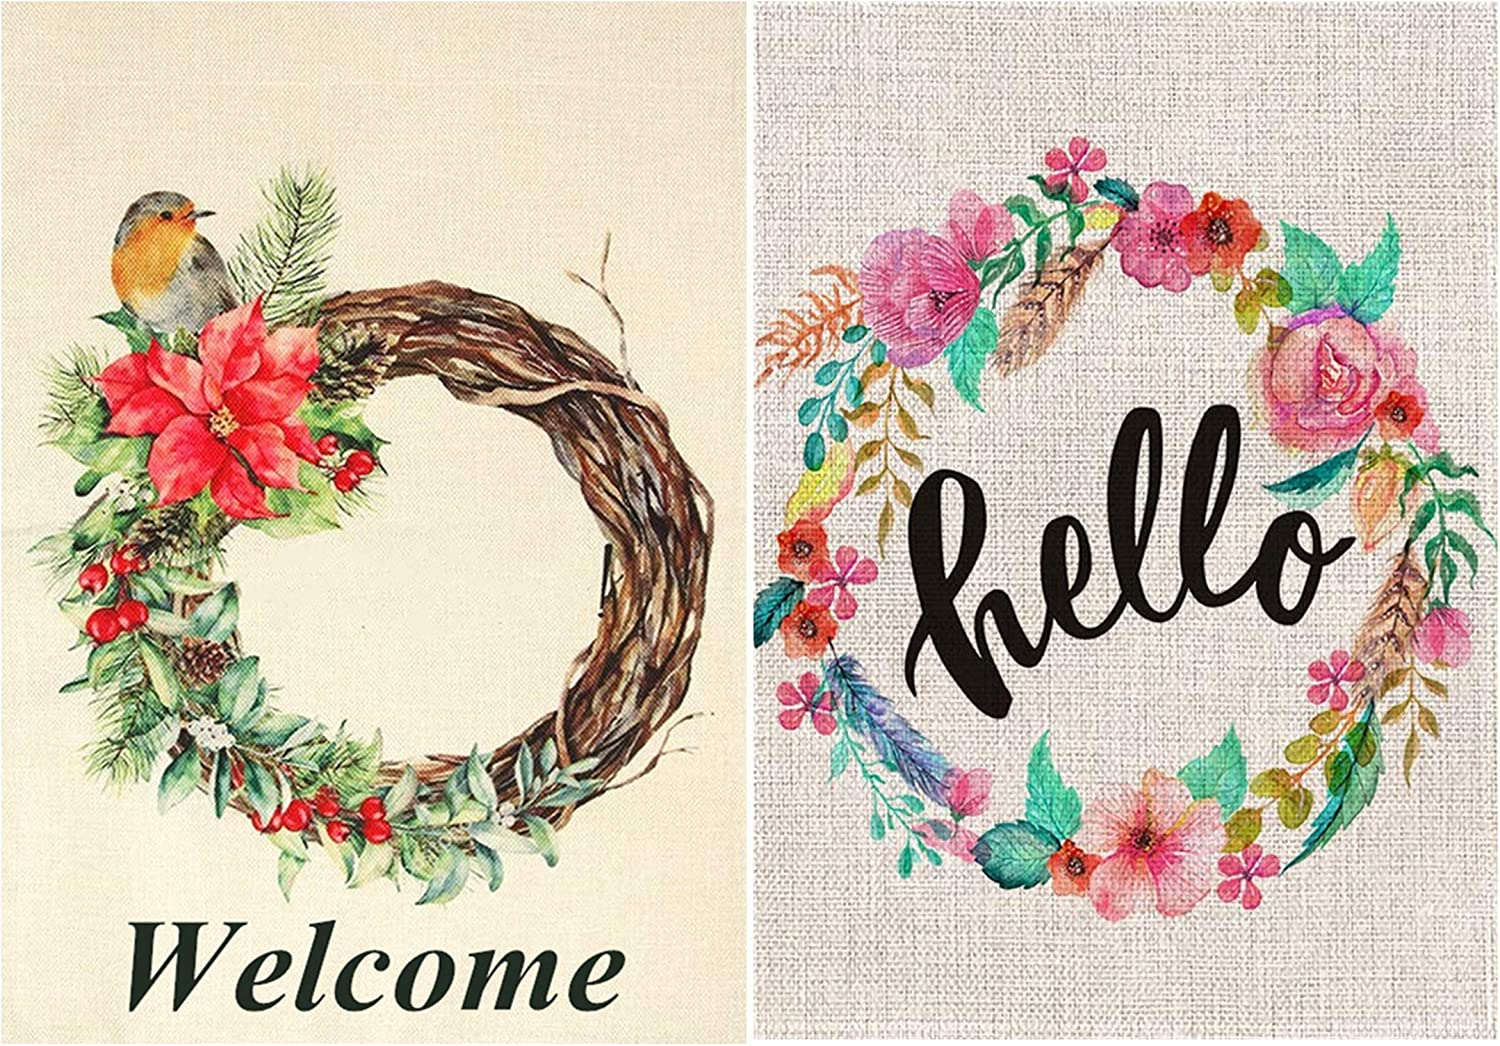 TGAUTO Boxwood Wreath Seasonal Garden Flags Merry Christmas, Hello Floral Wreath Garden Flag Vertical Double Sided Easter Spring Summer Welcome Yard Decor 12.5 x 18 (2 Pack)